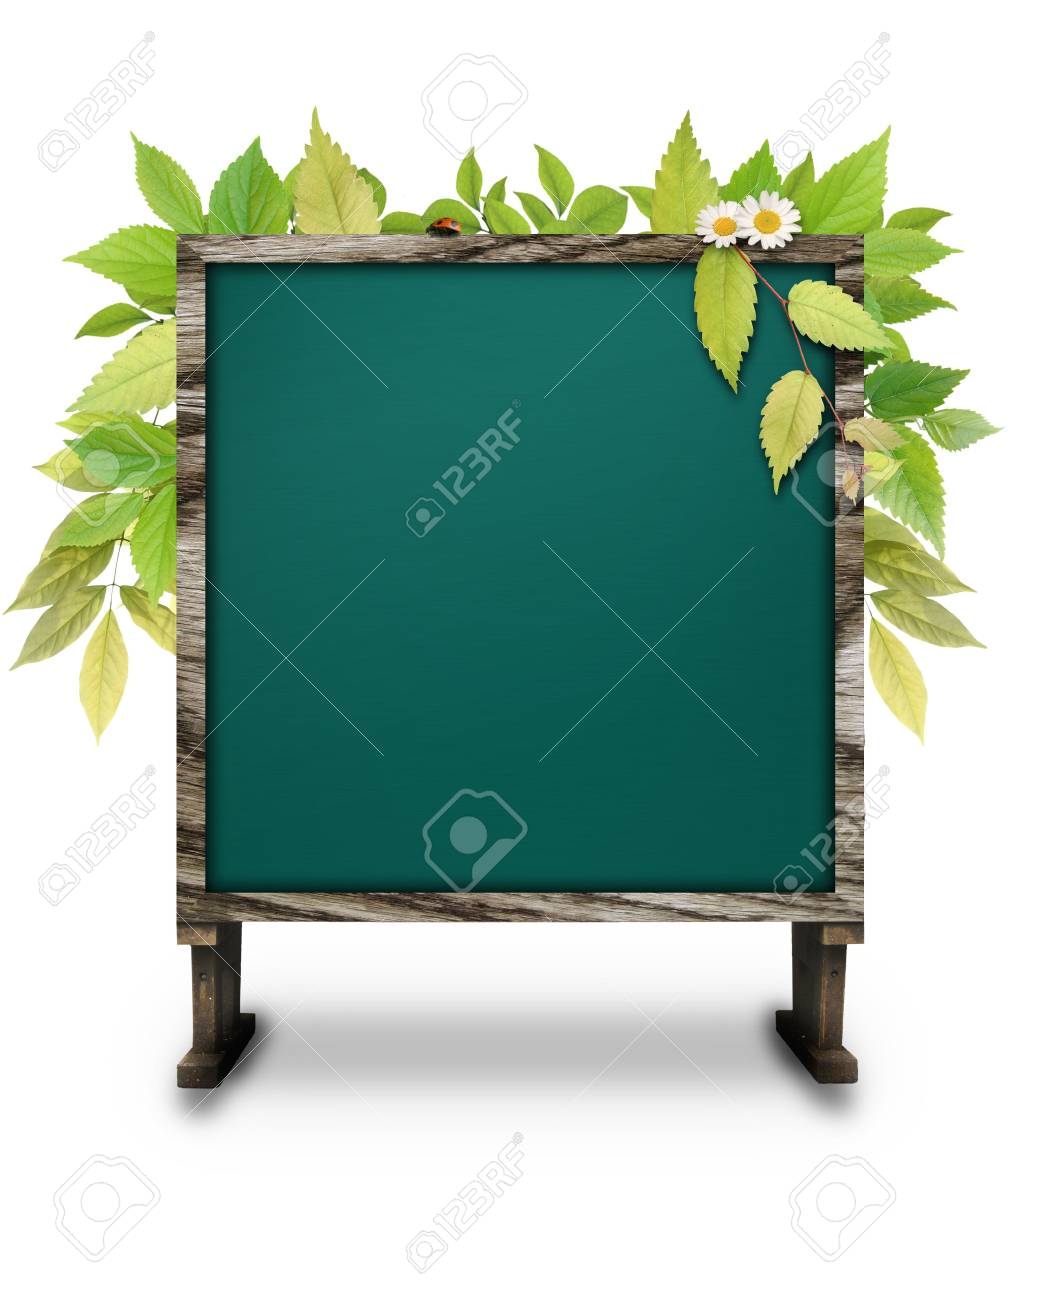 CG synthesis bulletin board of eco-image Stock Photo - 8162663